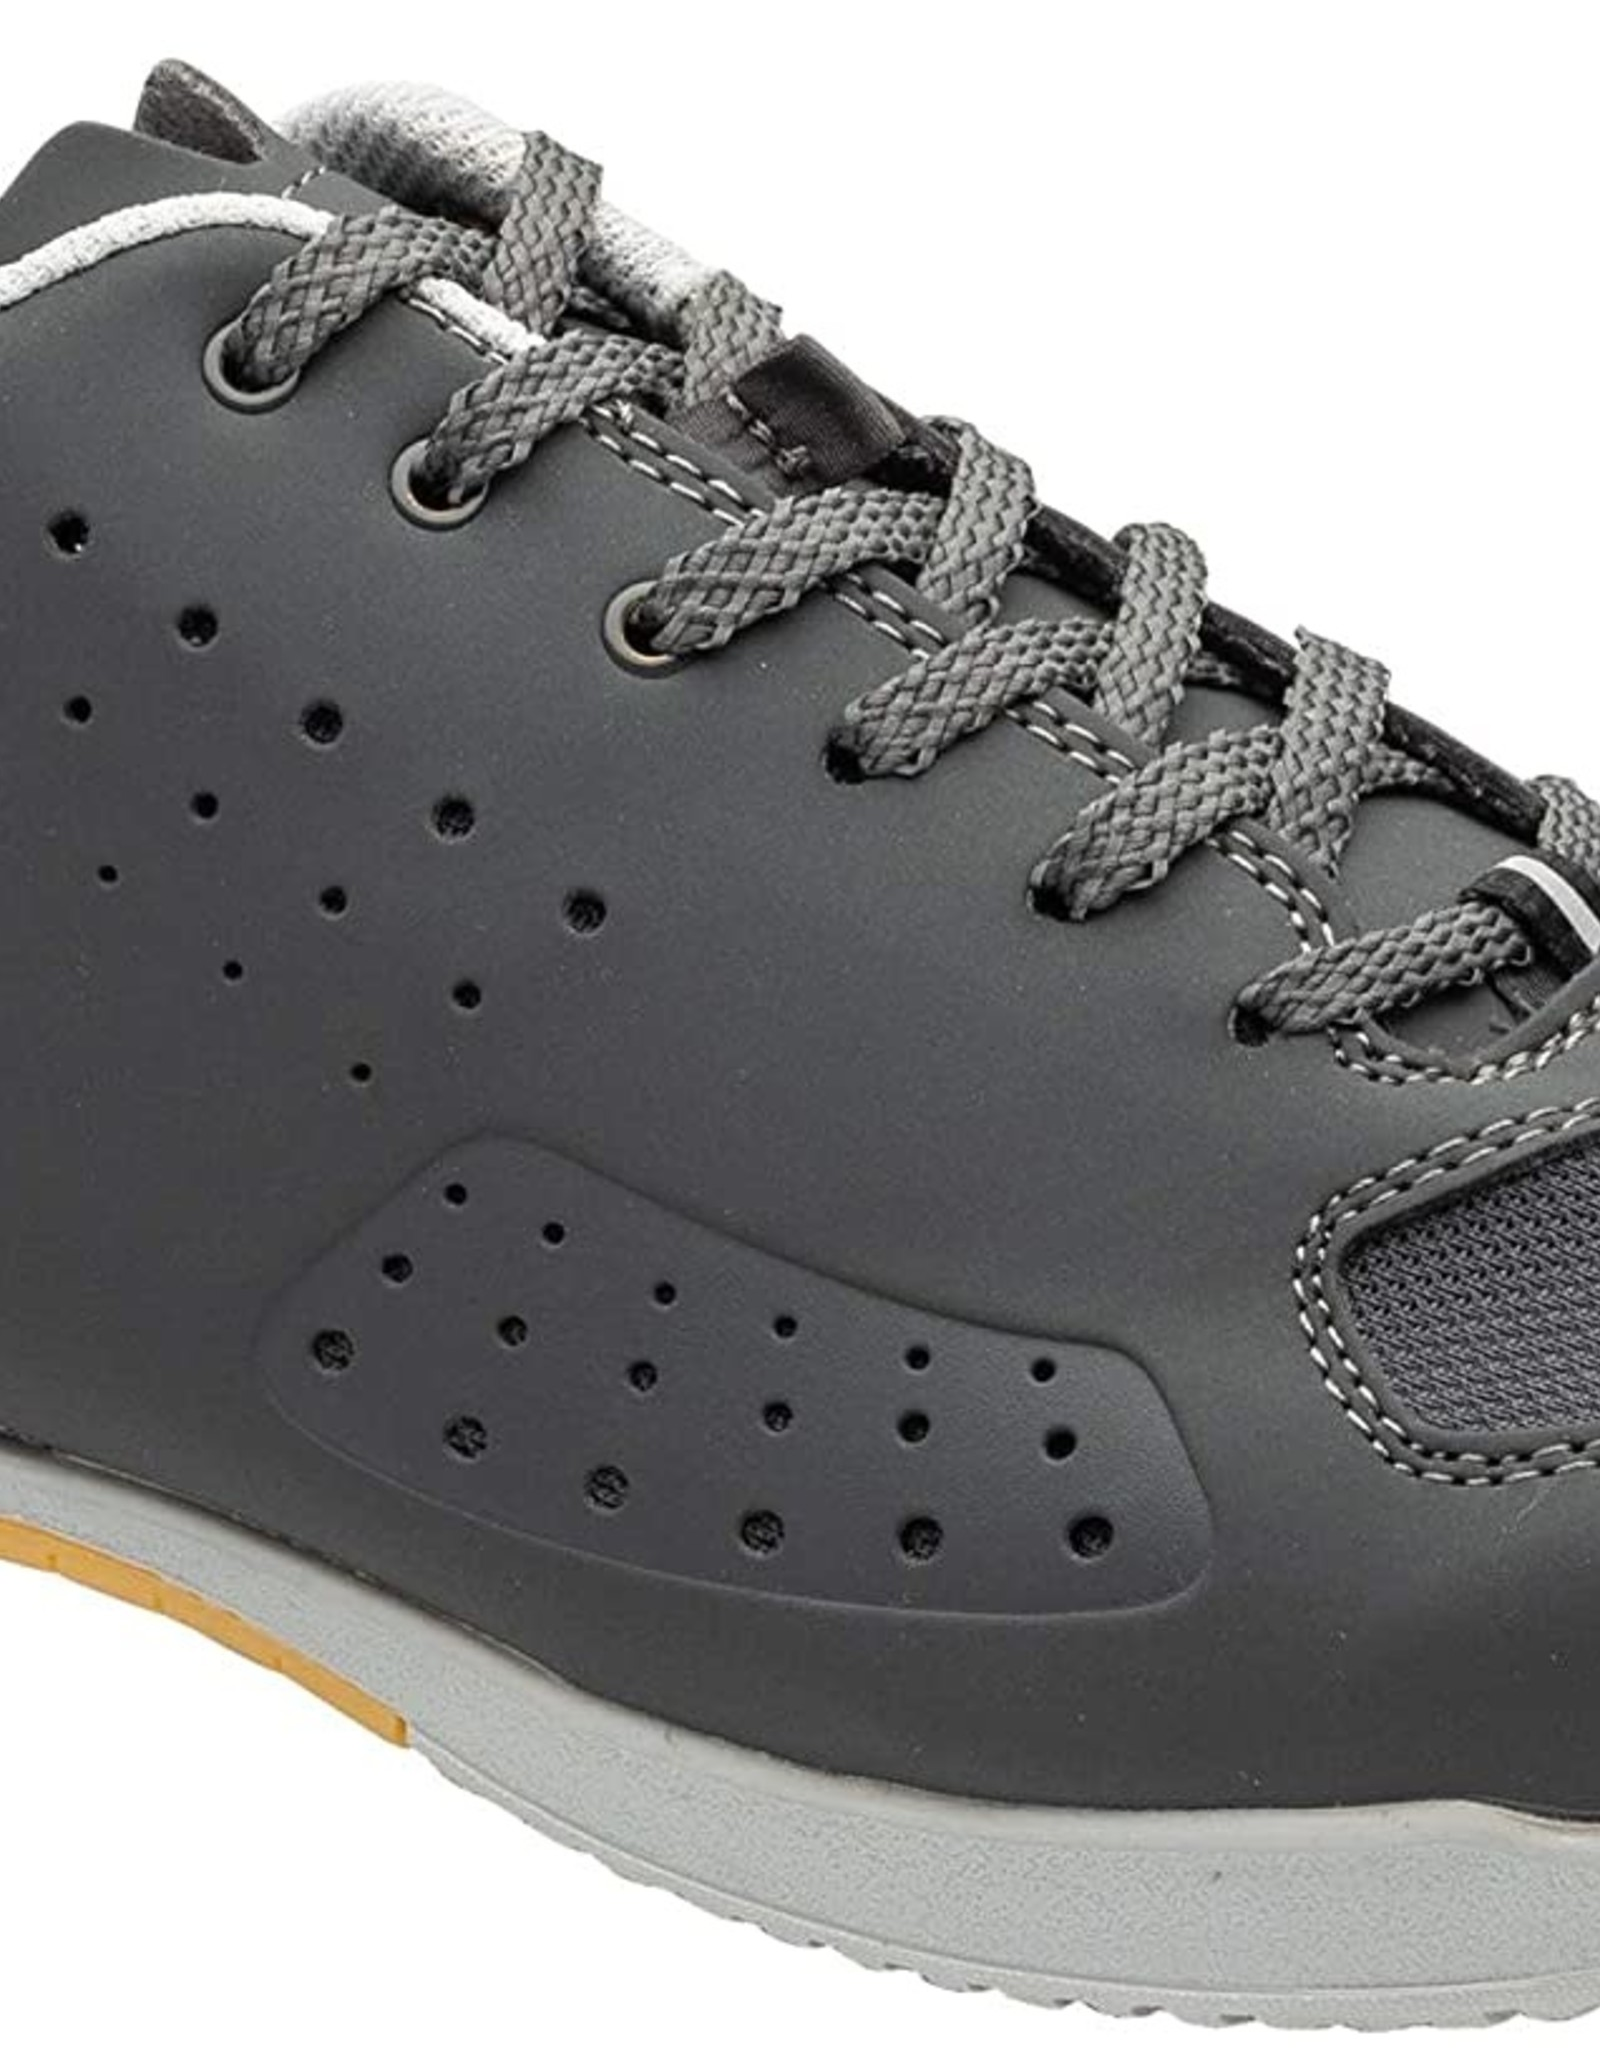 GARNEAU LOUIS GARNEAU URBAN CYCLING SHOES ASPHALT 43